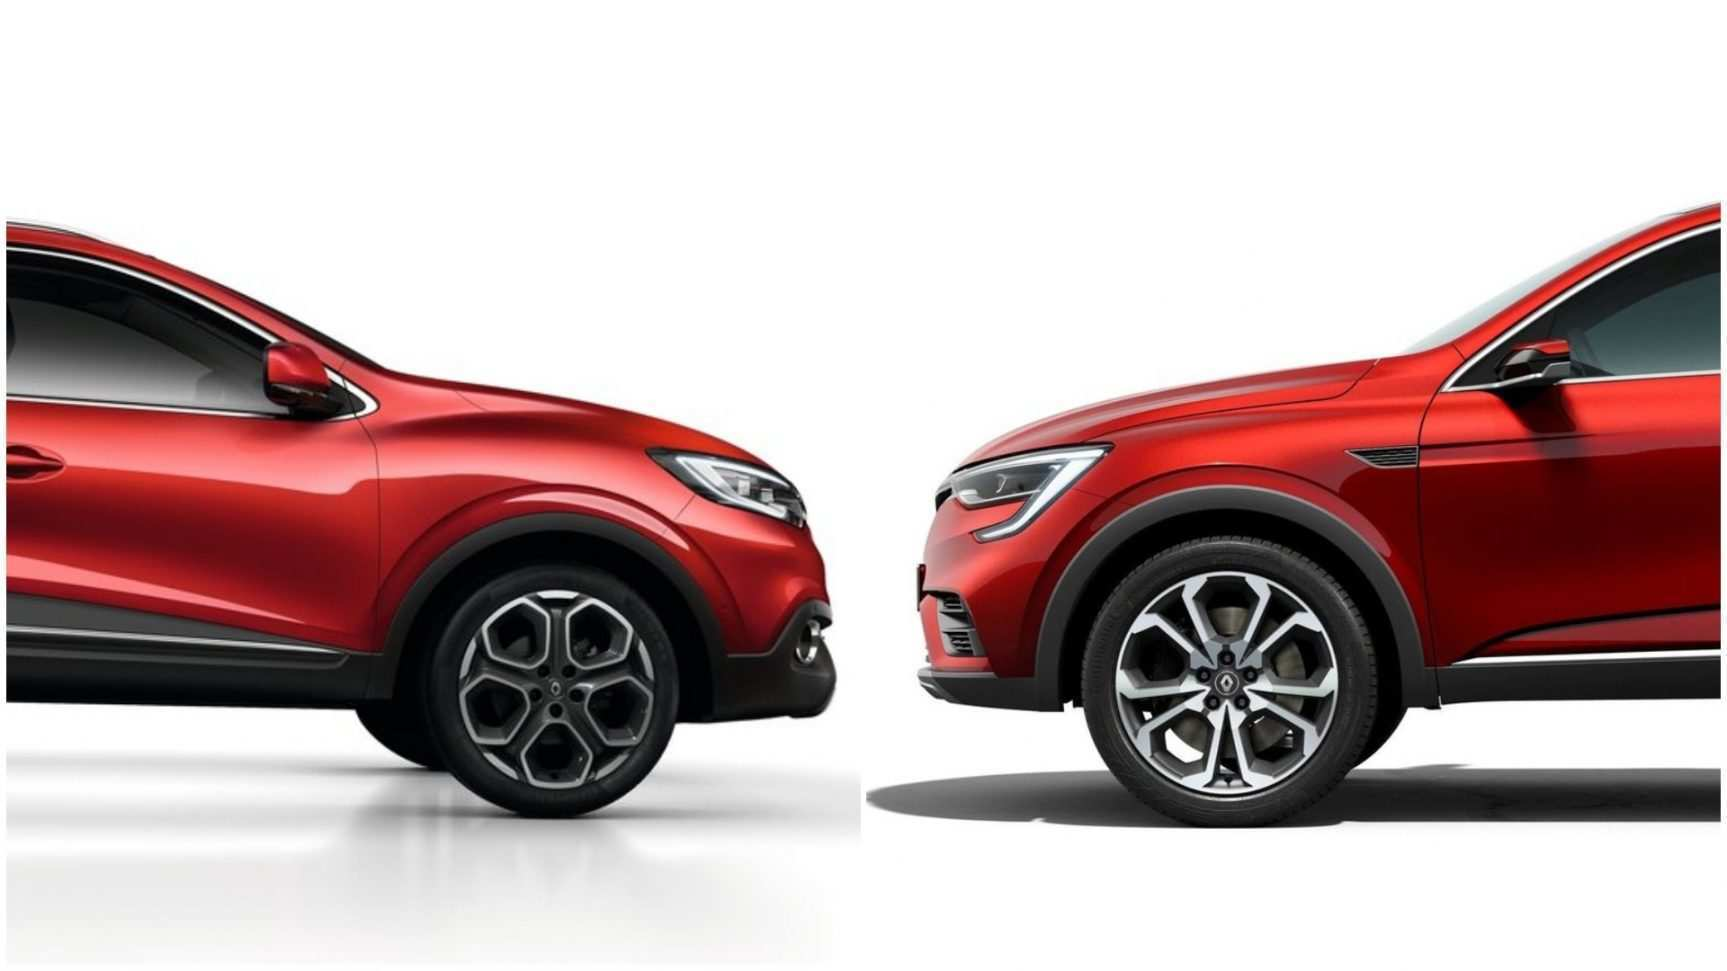 88 The 2020 Renault Kadjar Exterior And Interior